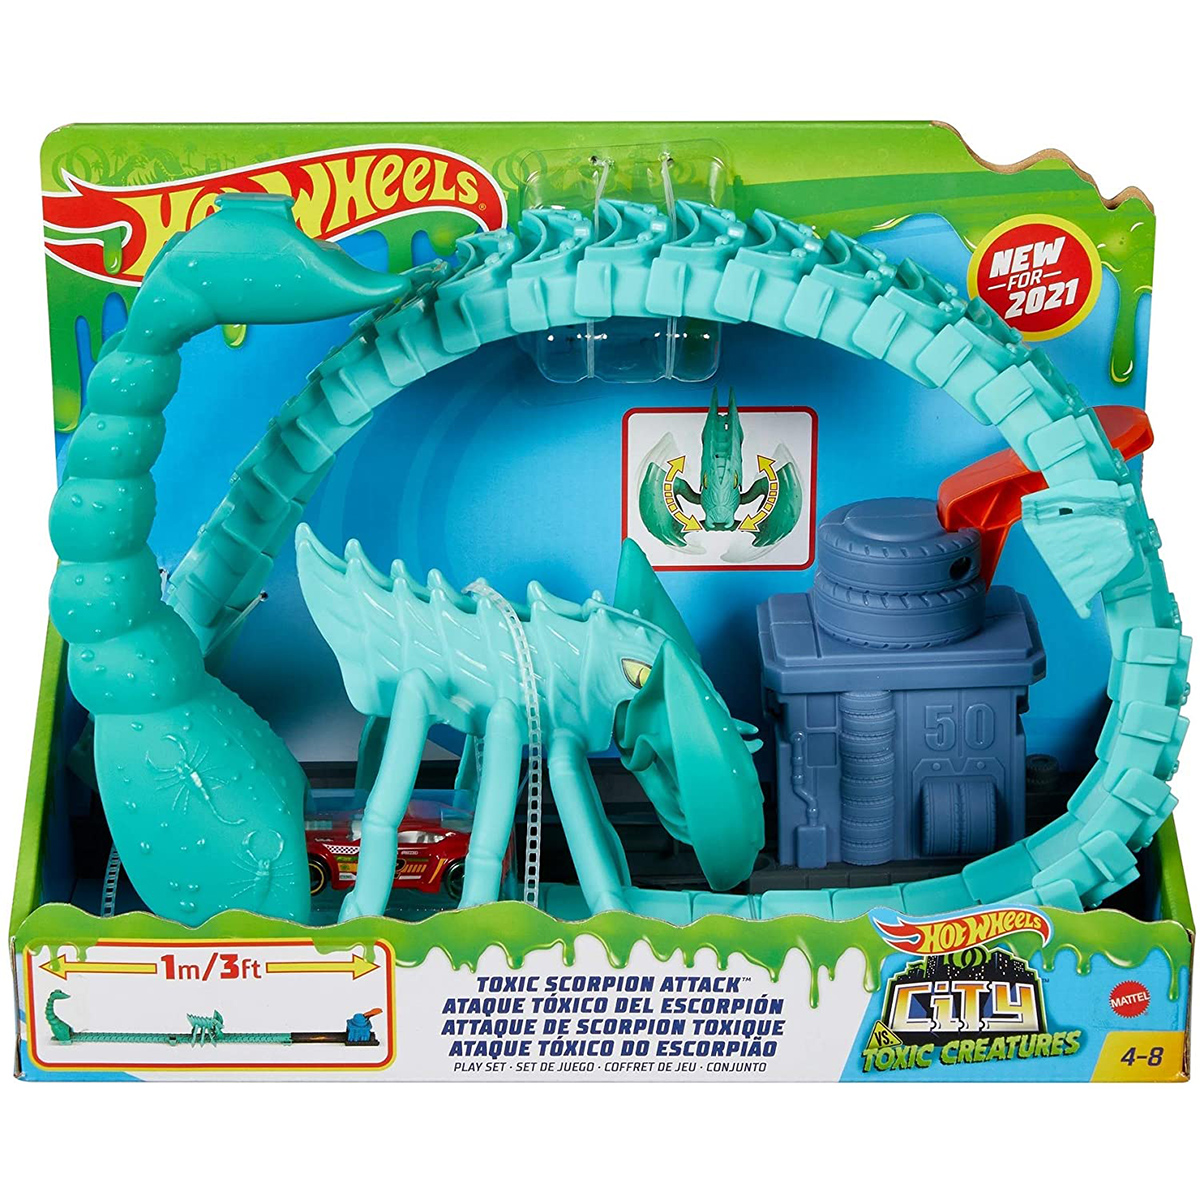 Set de joaca Circuit cu obstacole Hot Wheels City, Toxic Scorpion Attack (GTT67)